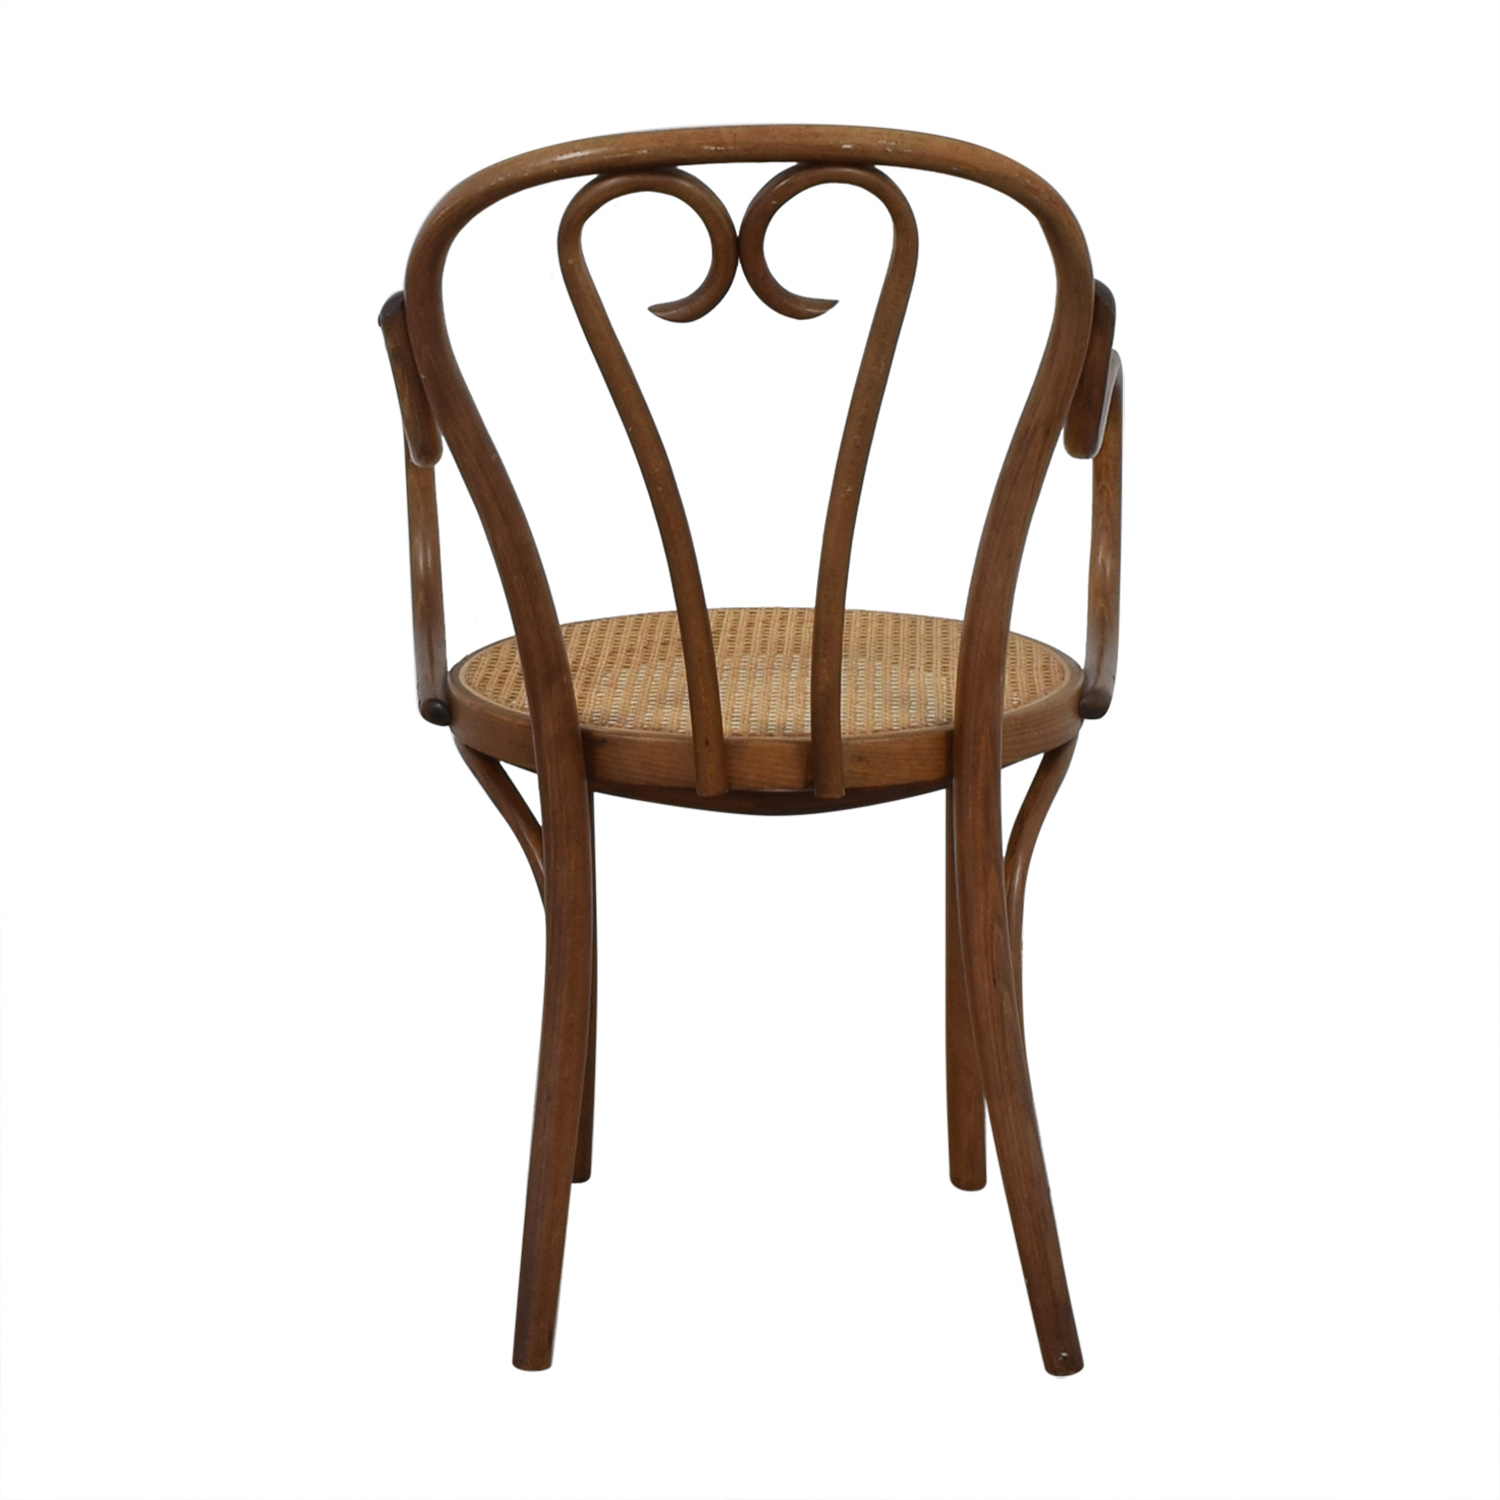 Thonet Bentwood Bistro Chair / Dining Chairs